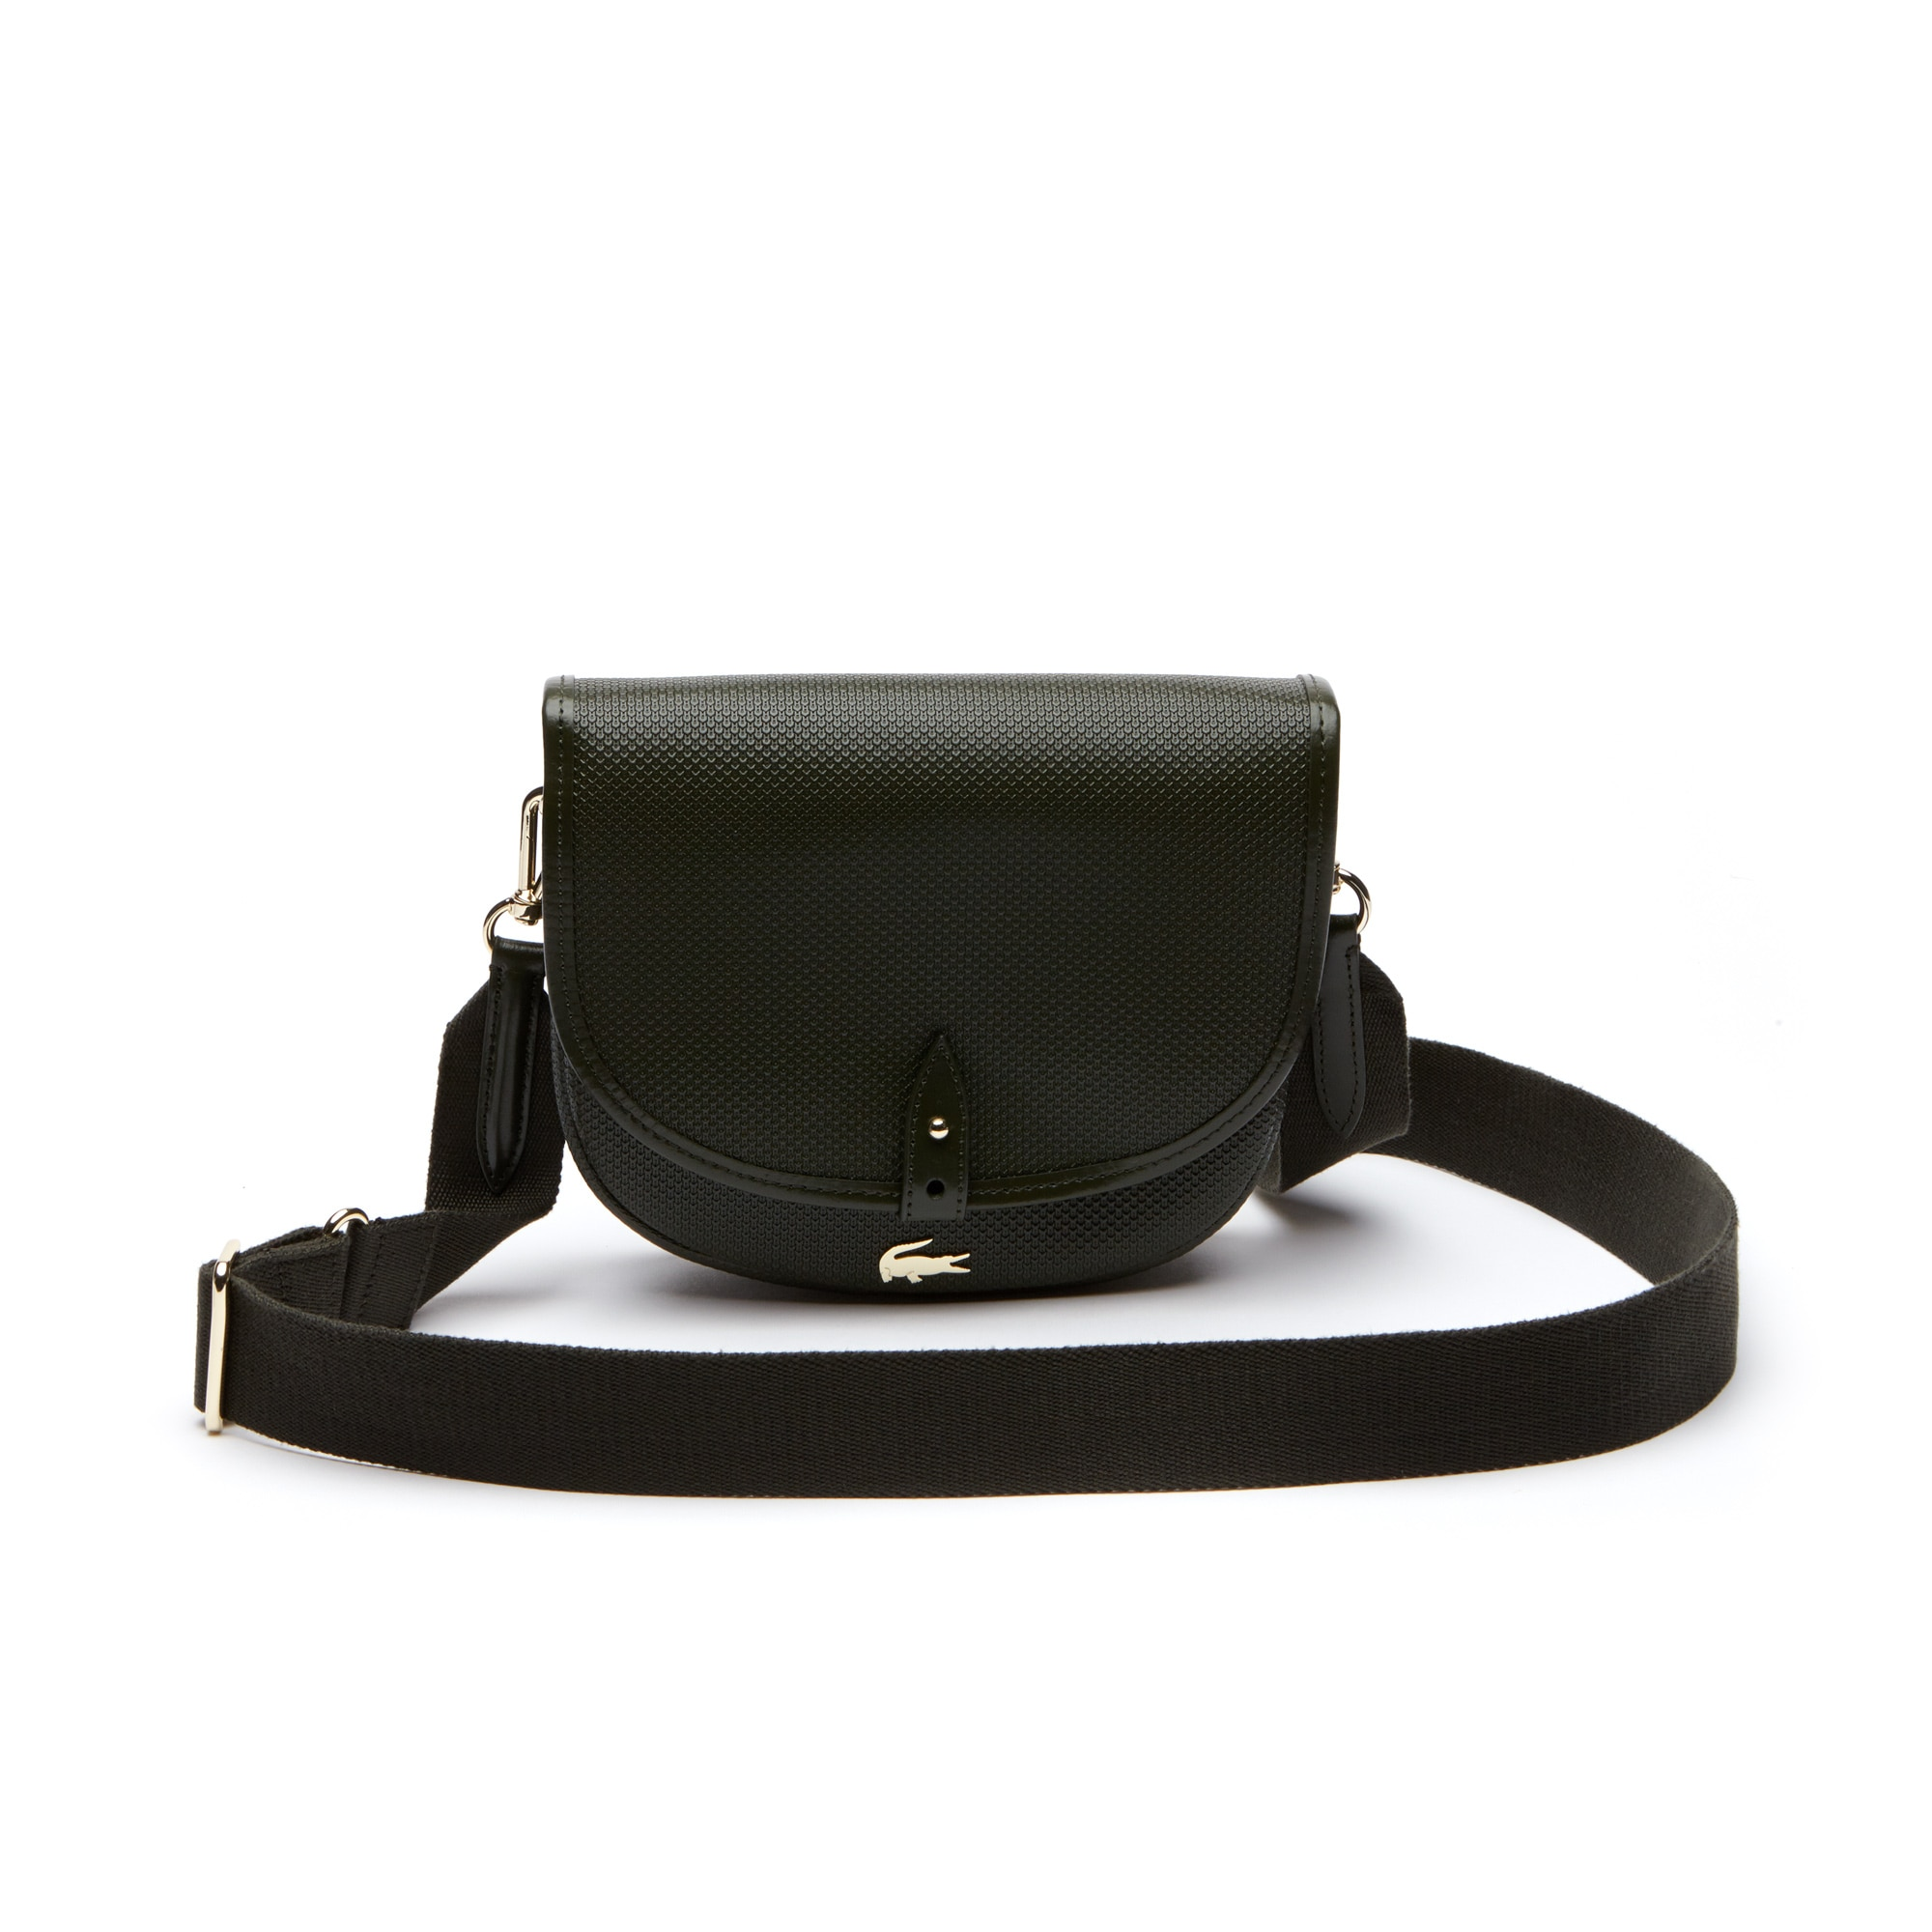 Women's Chantaco Piqué Leather Flap Crossover Bag